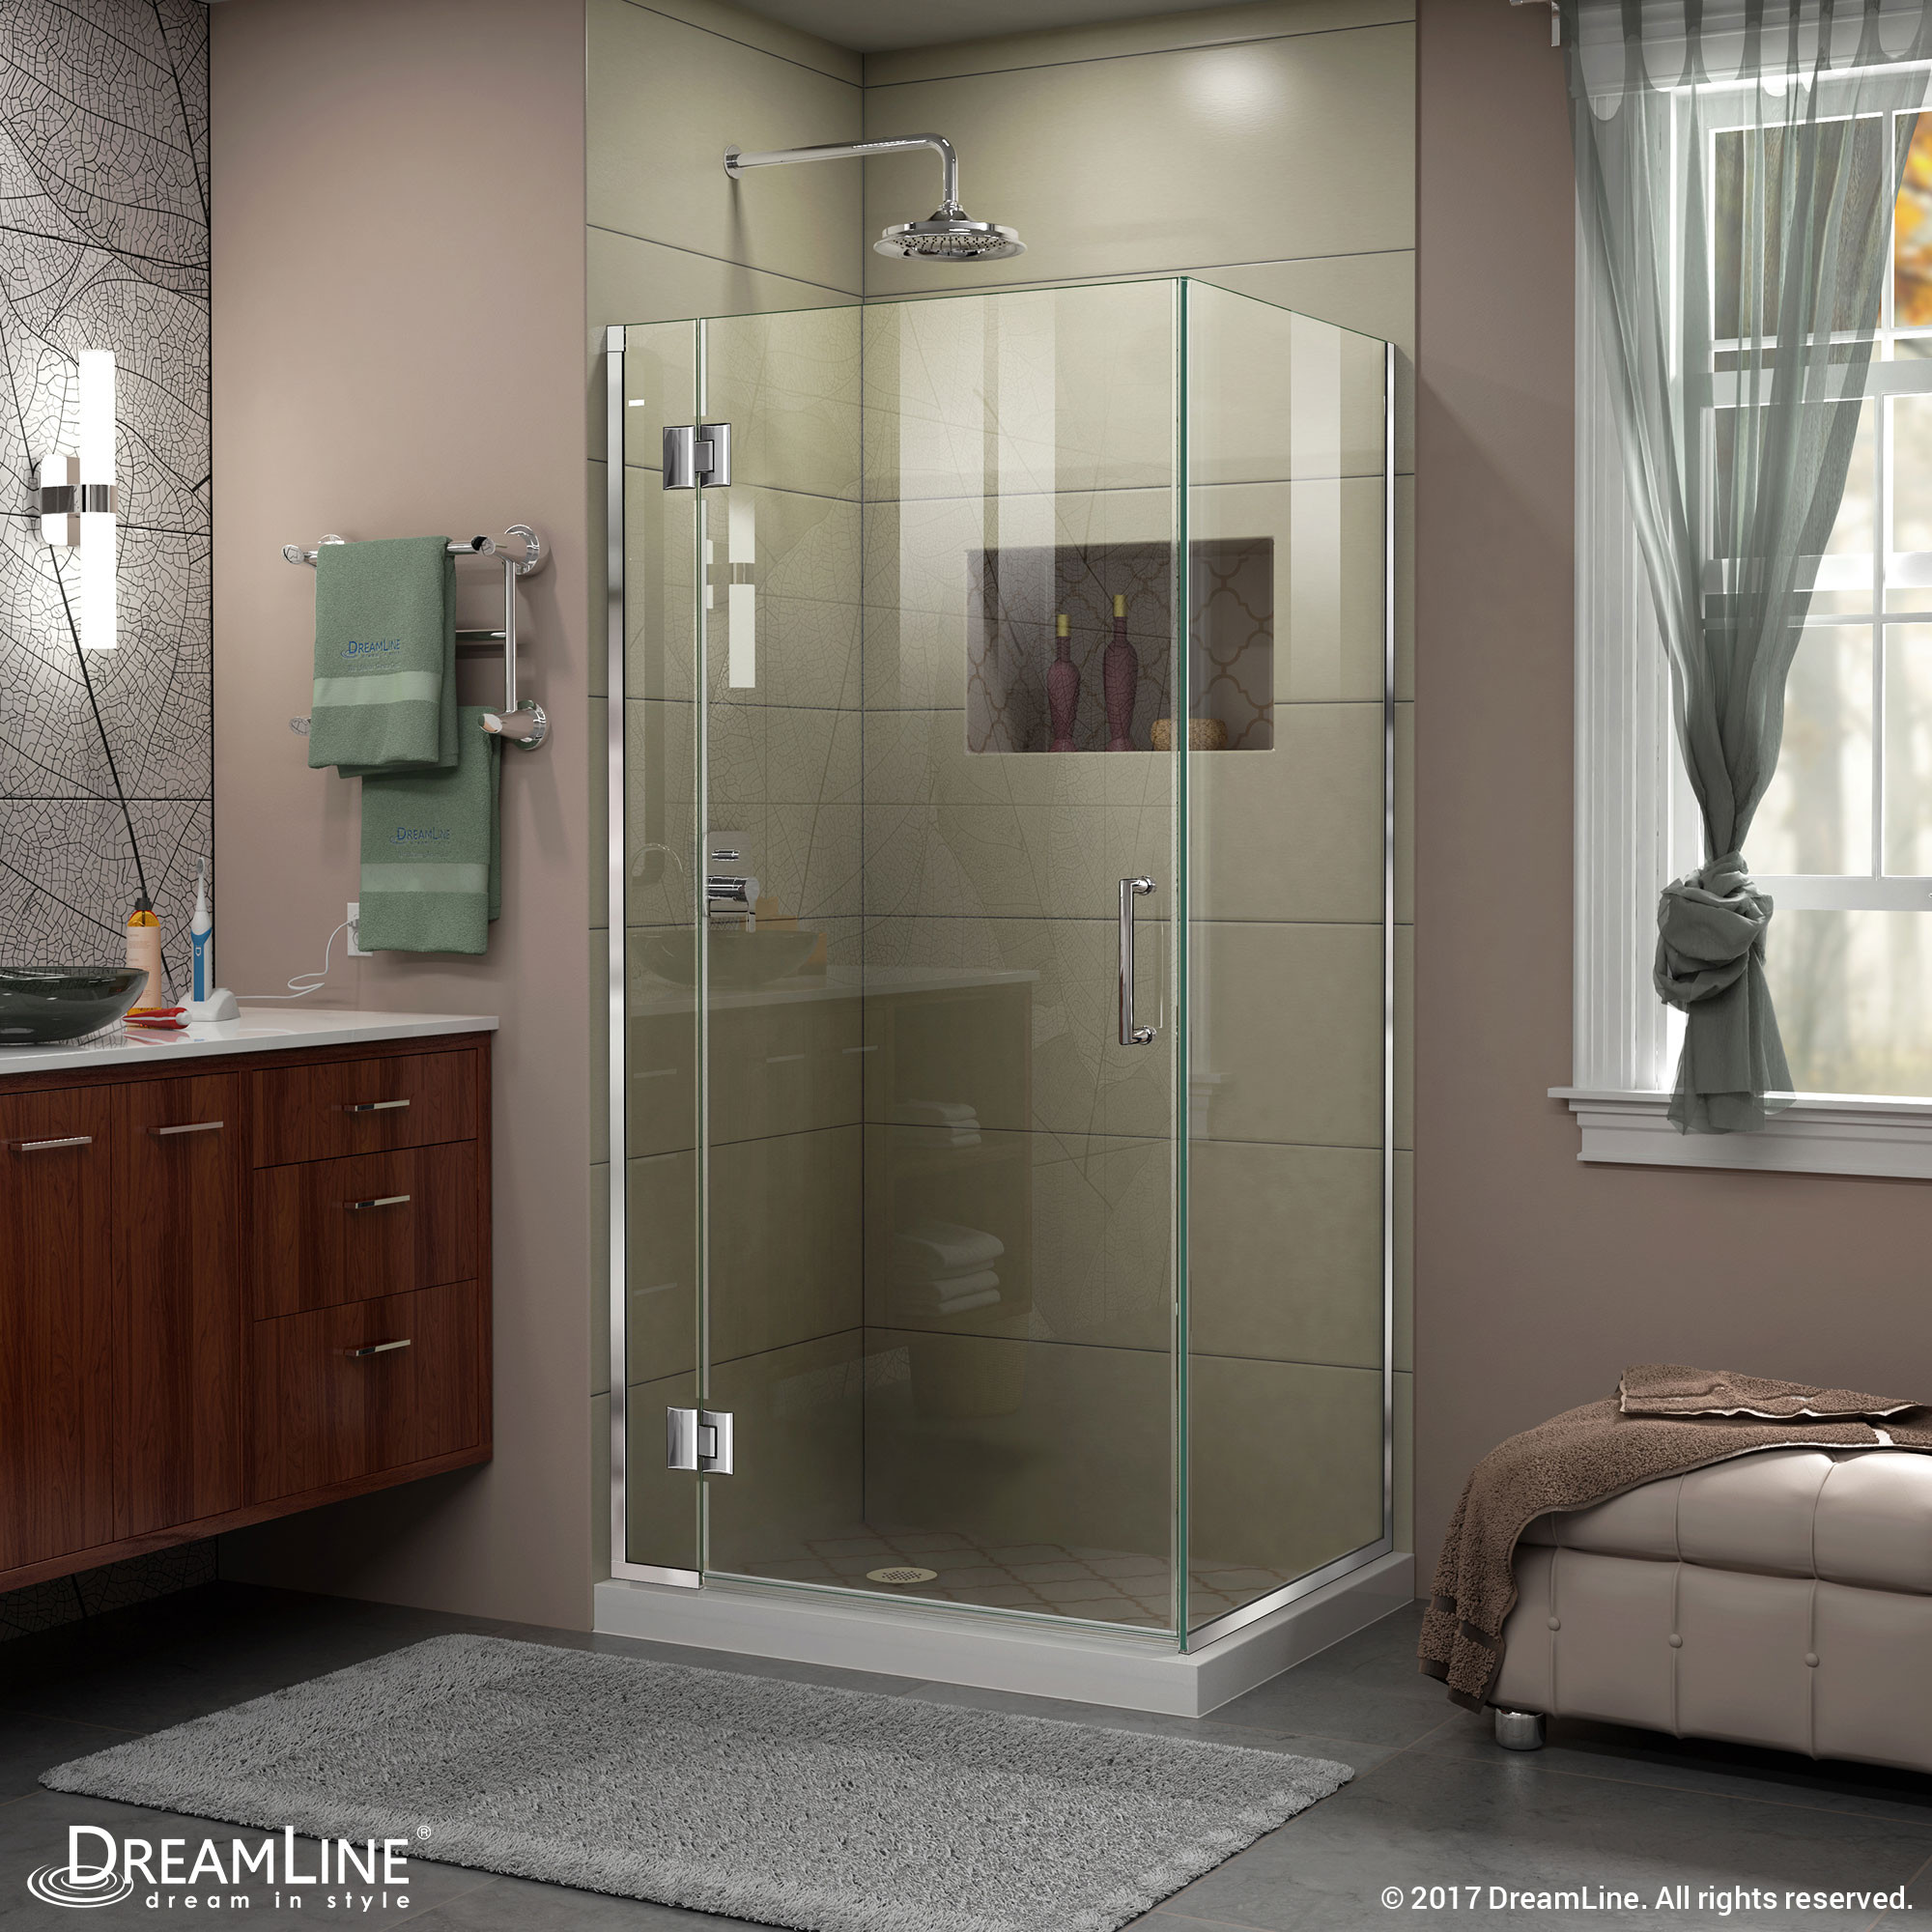 "DreamLine E12434-01 Unidoor-X 30-3/8 x 34 x 72"" Hinged Shower Enclosure In Chrome Finish"